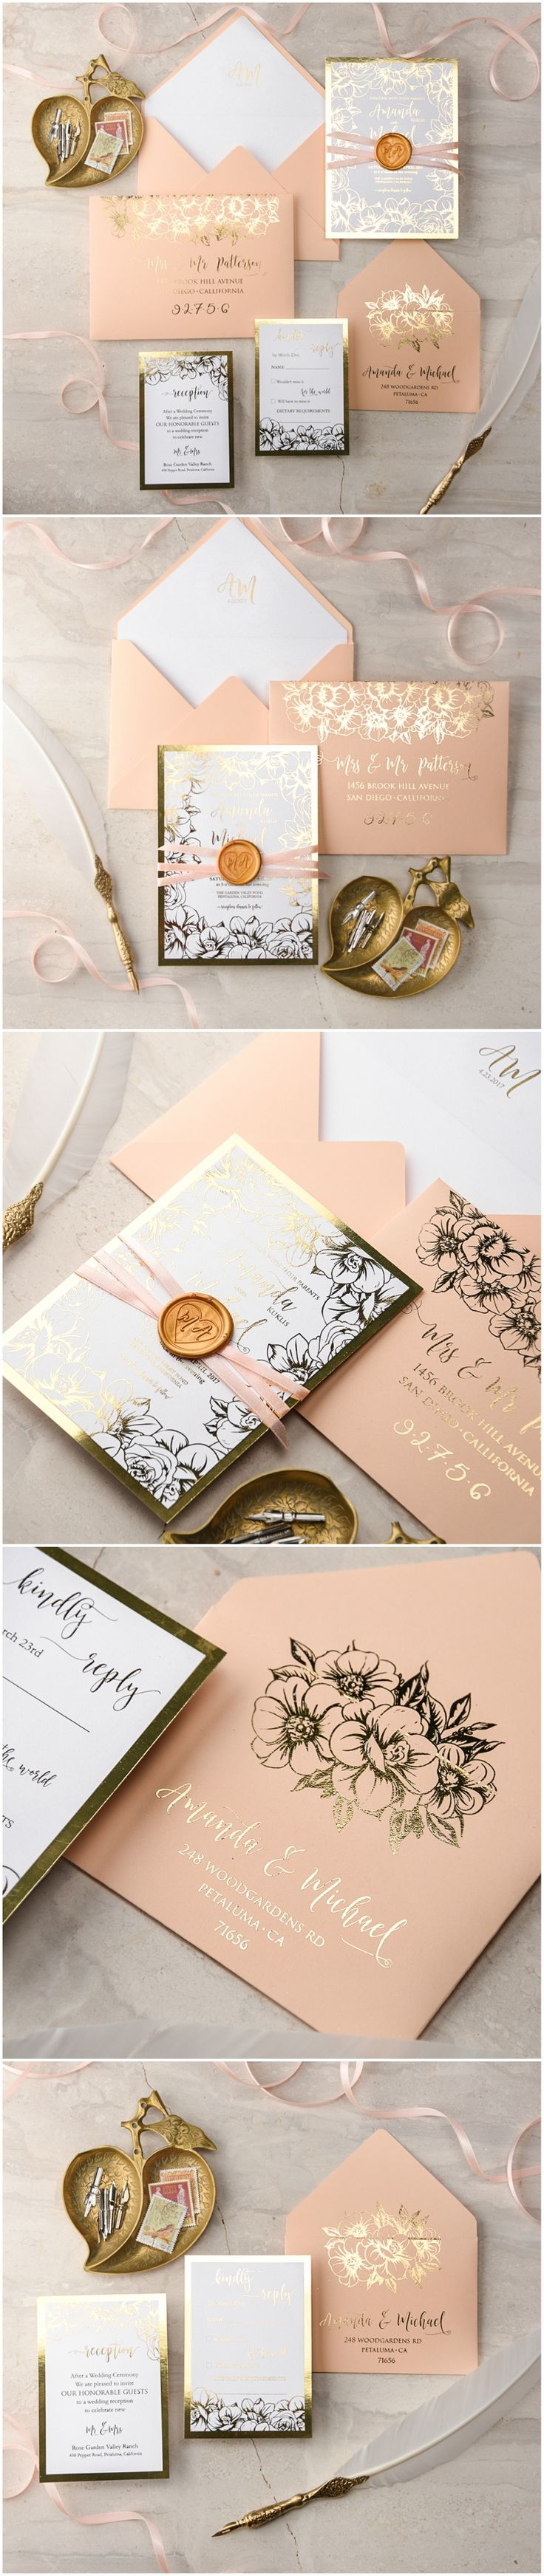 gold foil printing and peach invitations 3795